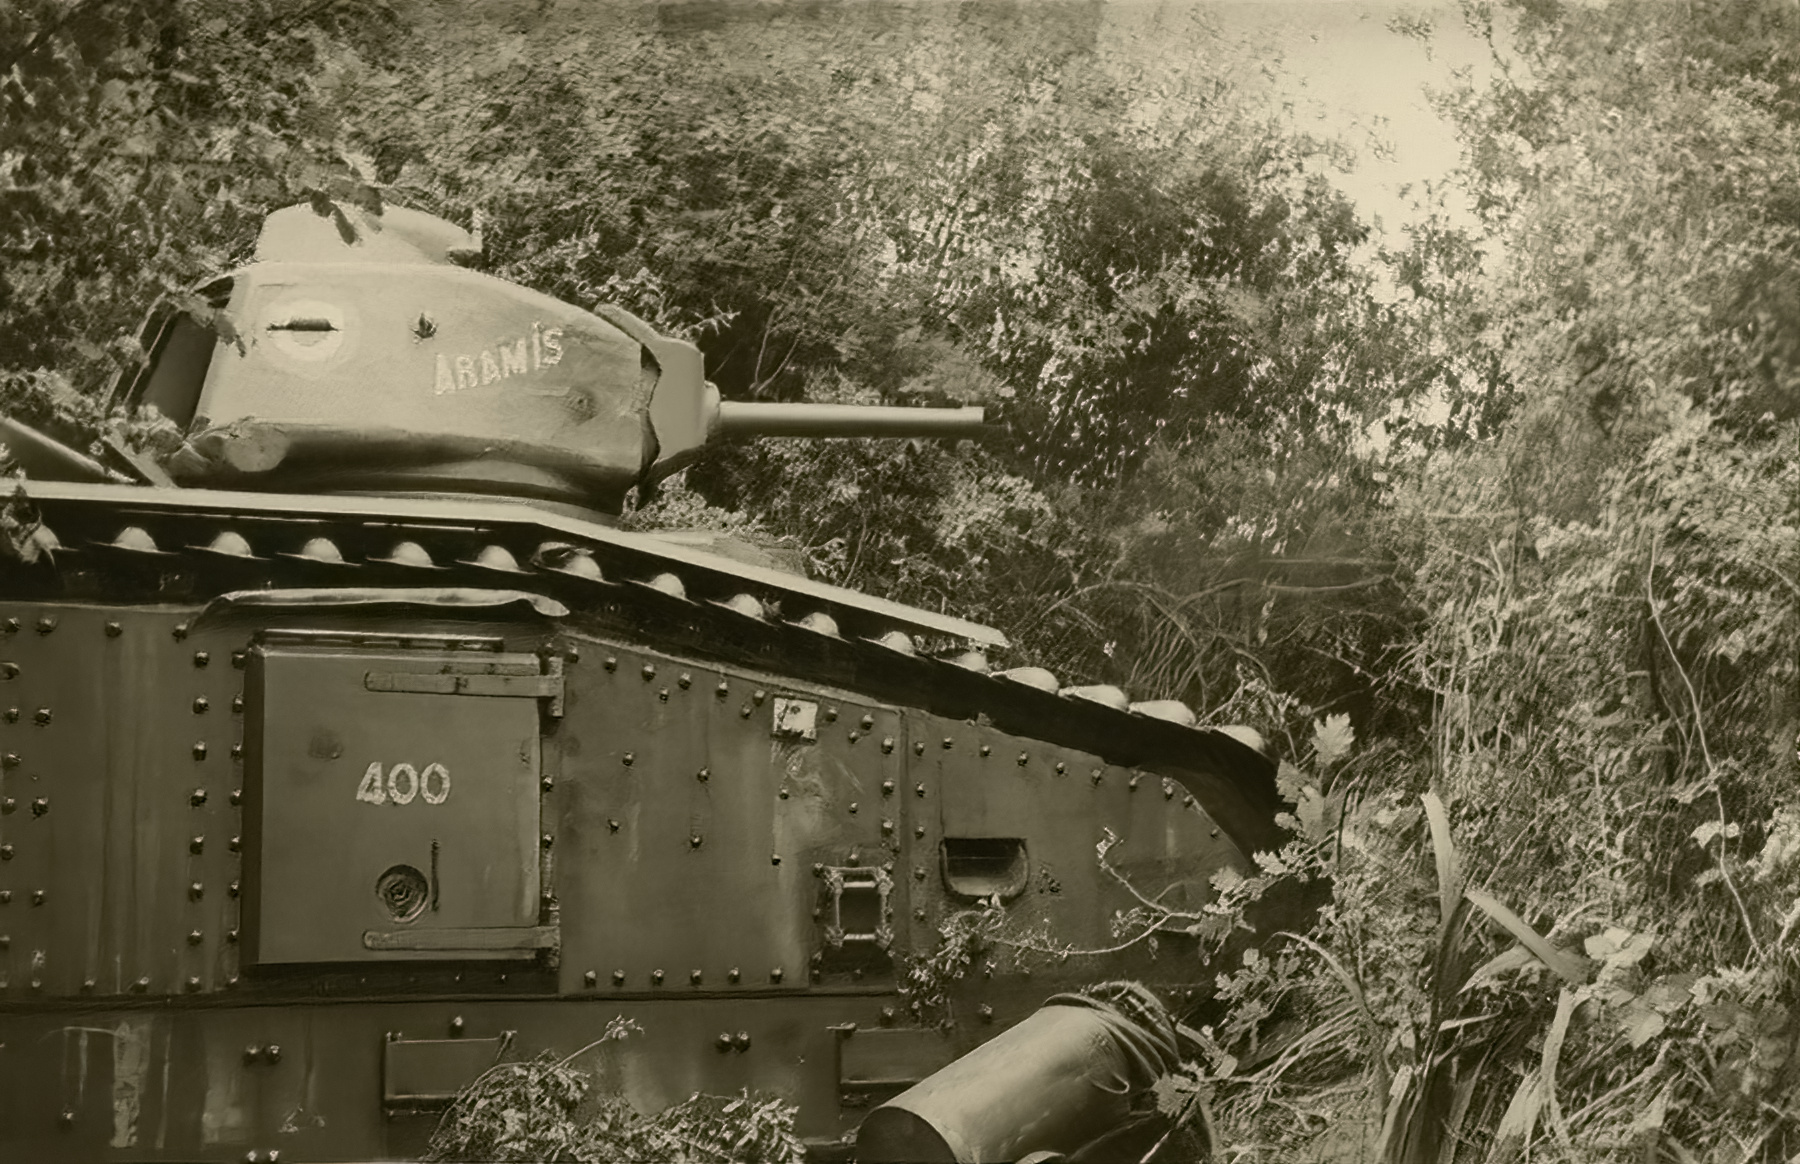 French Army Renault Char B1 named Aramis 400 abandoned during the battle of France 1940 ebay 01